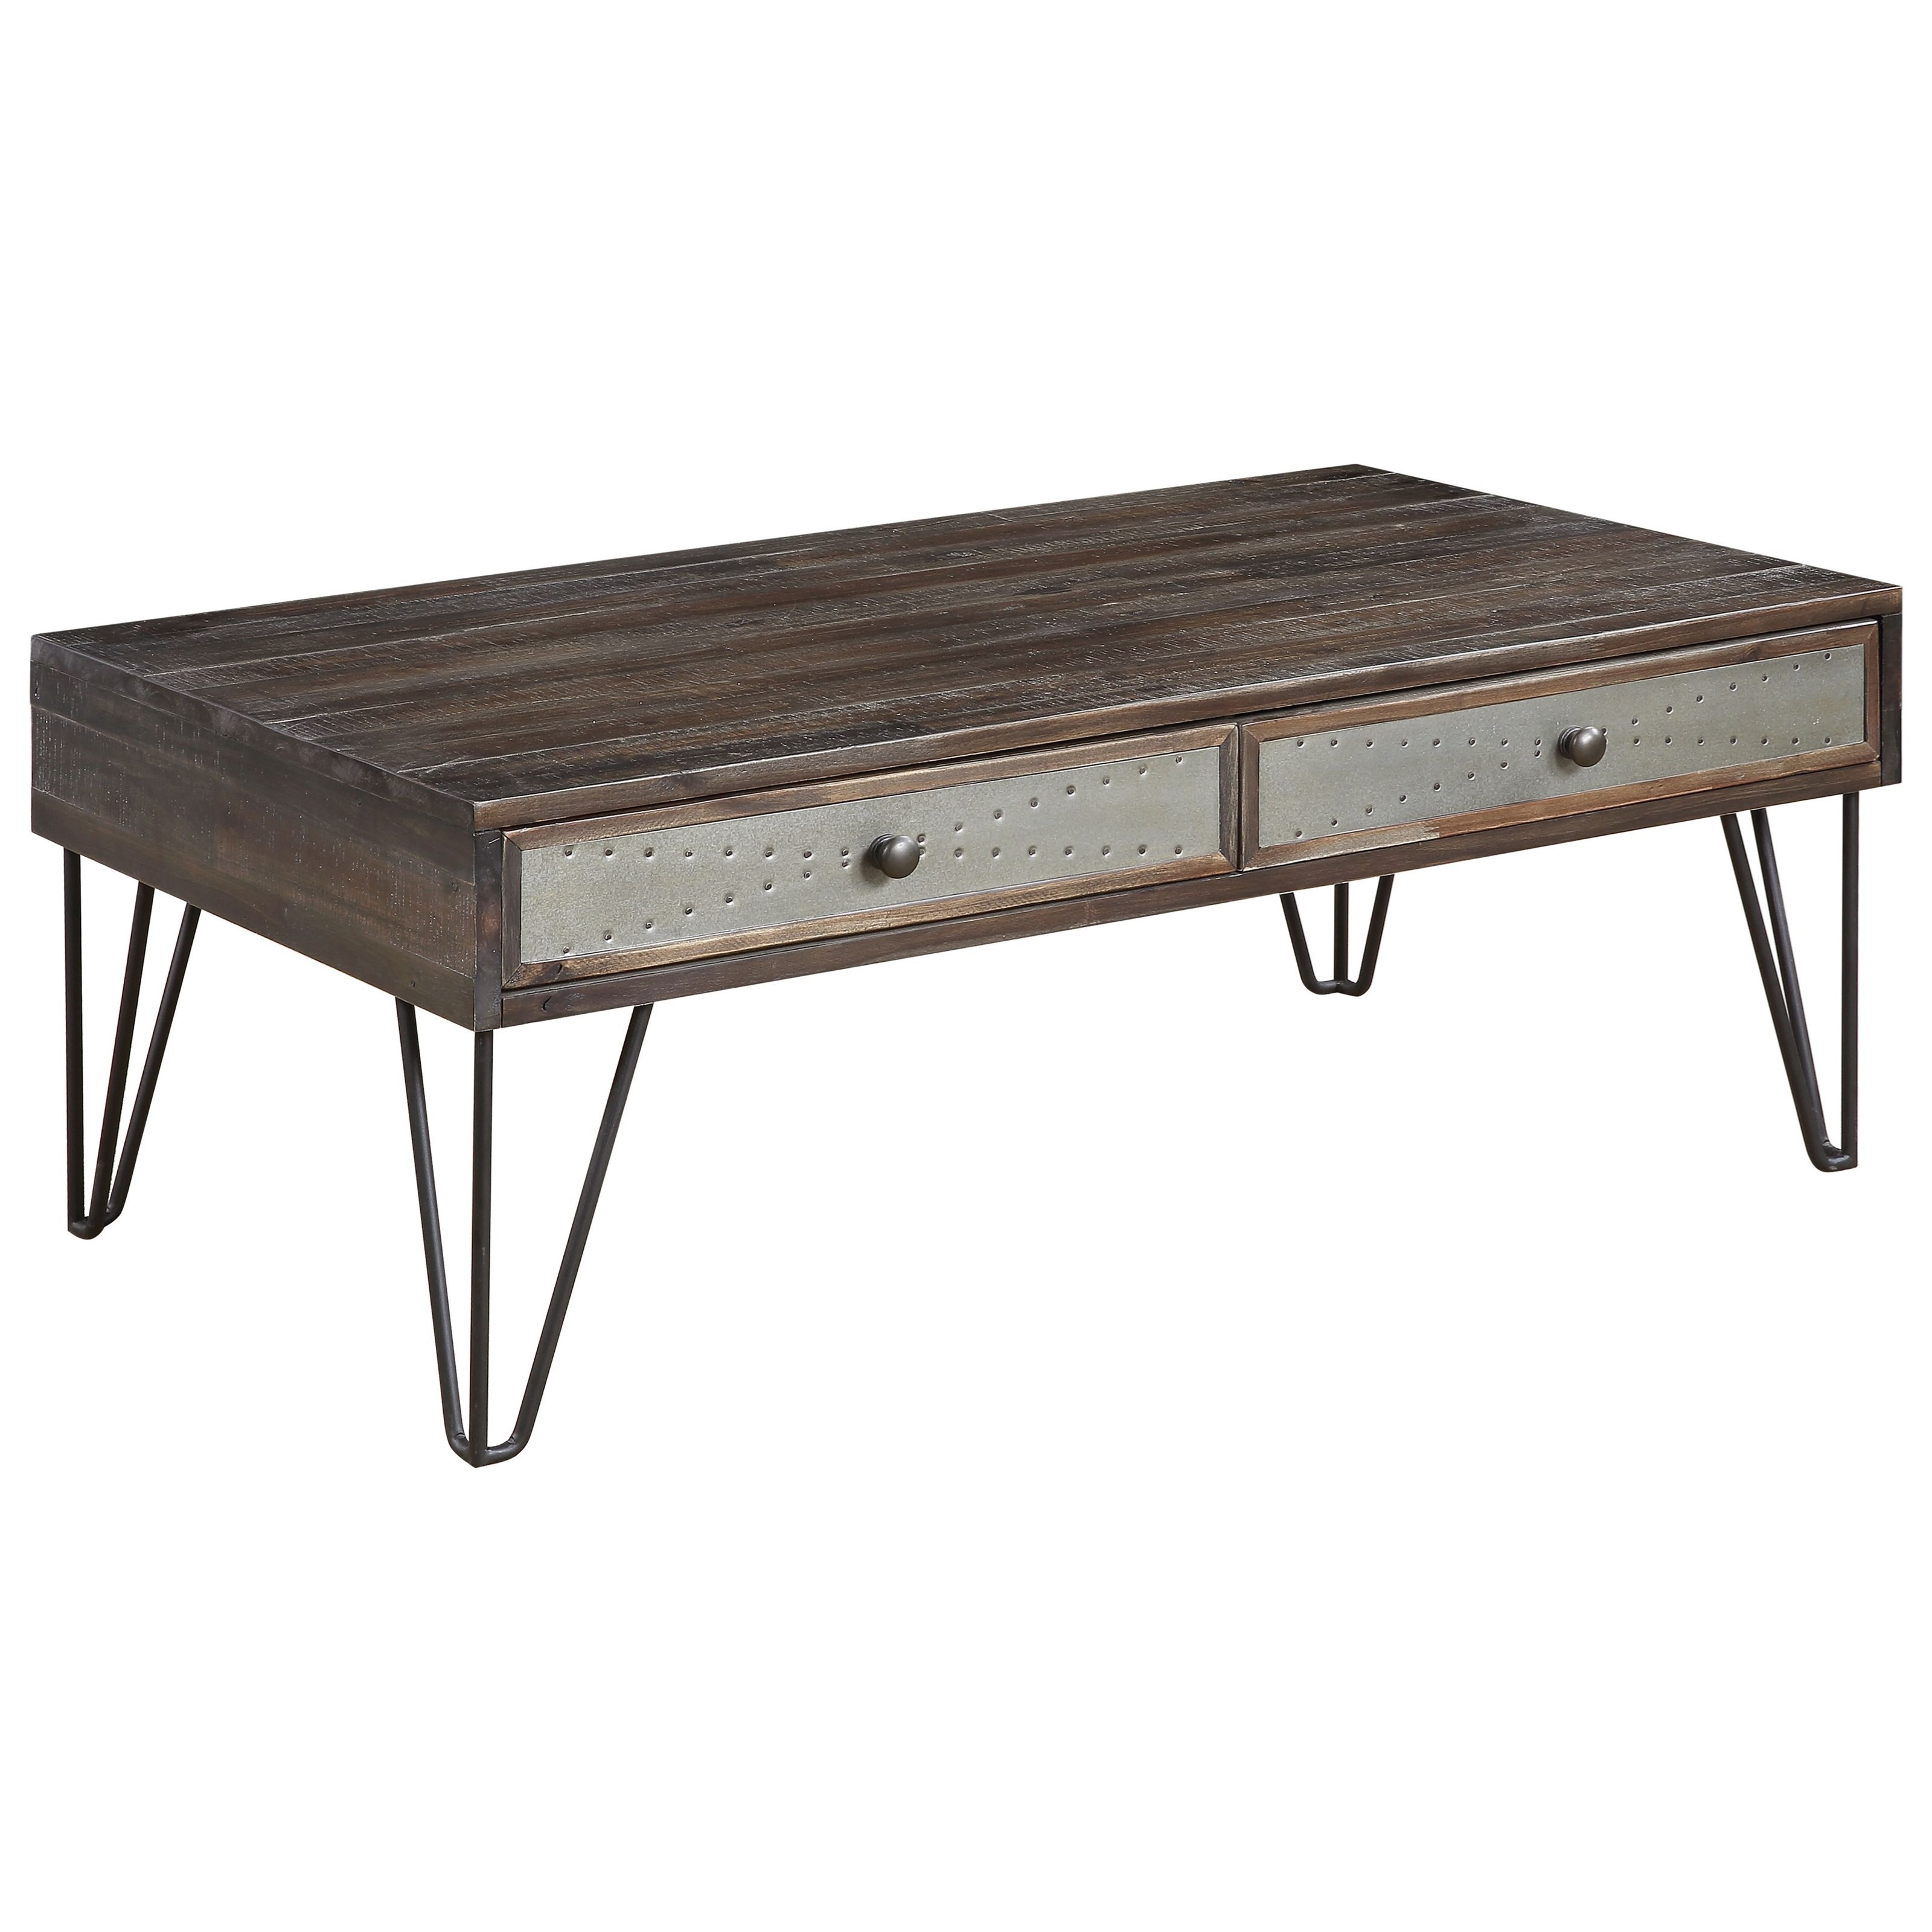 Aspen Court Vintage 2-Drawer Cocktail Table by Coast to Coast Imports at Baer's Furniture